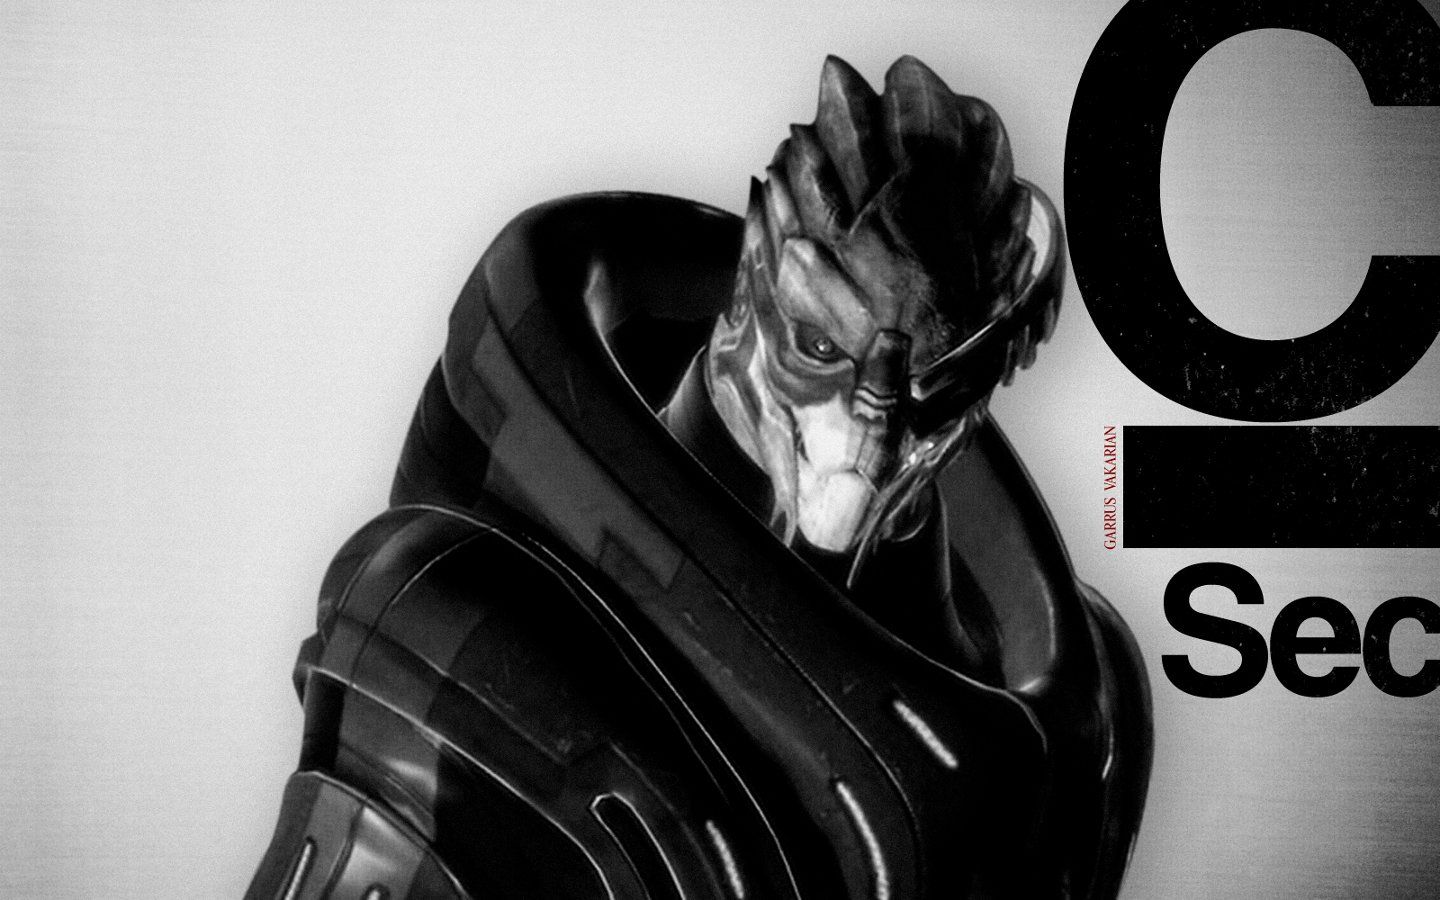 Garrus Vakarian, I might have a slight crush on you.